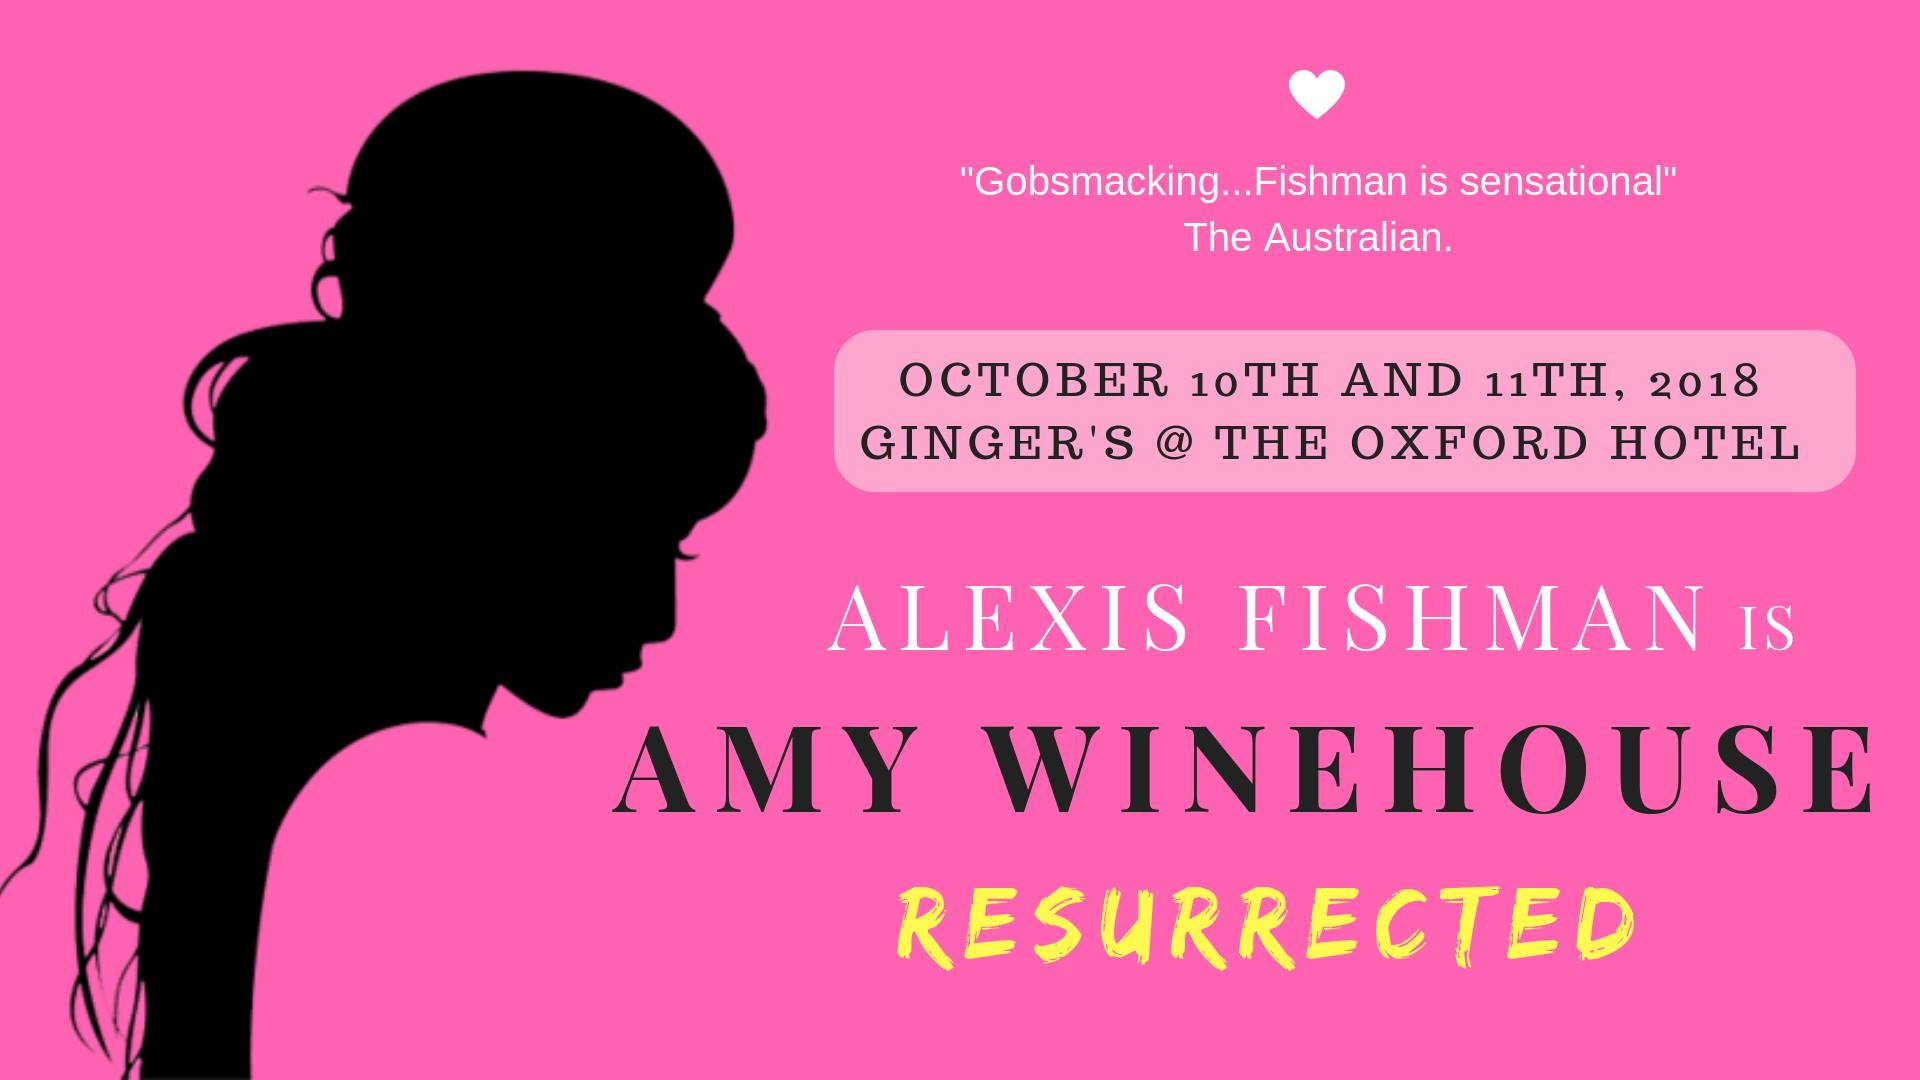 Alexis Fishman is Amy Resurrected - Amy Winehouse has been resurrected, revived and re-imagined in this brand new, hilarious and uplifting show starring world renowned cabaret star, Alexis Fishman.After the news arrives that her idol Tony Bennett would give anything to record with her again, Amy Winehouse finds her way back from wherever it is she went after her untimely death in 2011. She's ripe for a comeback, even if it's from the dead.Expect the beehive, the foul-mouth and all of Amy's hits, including some you may never have heard before.